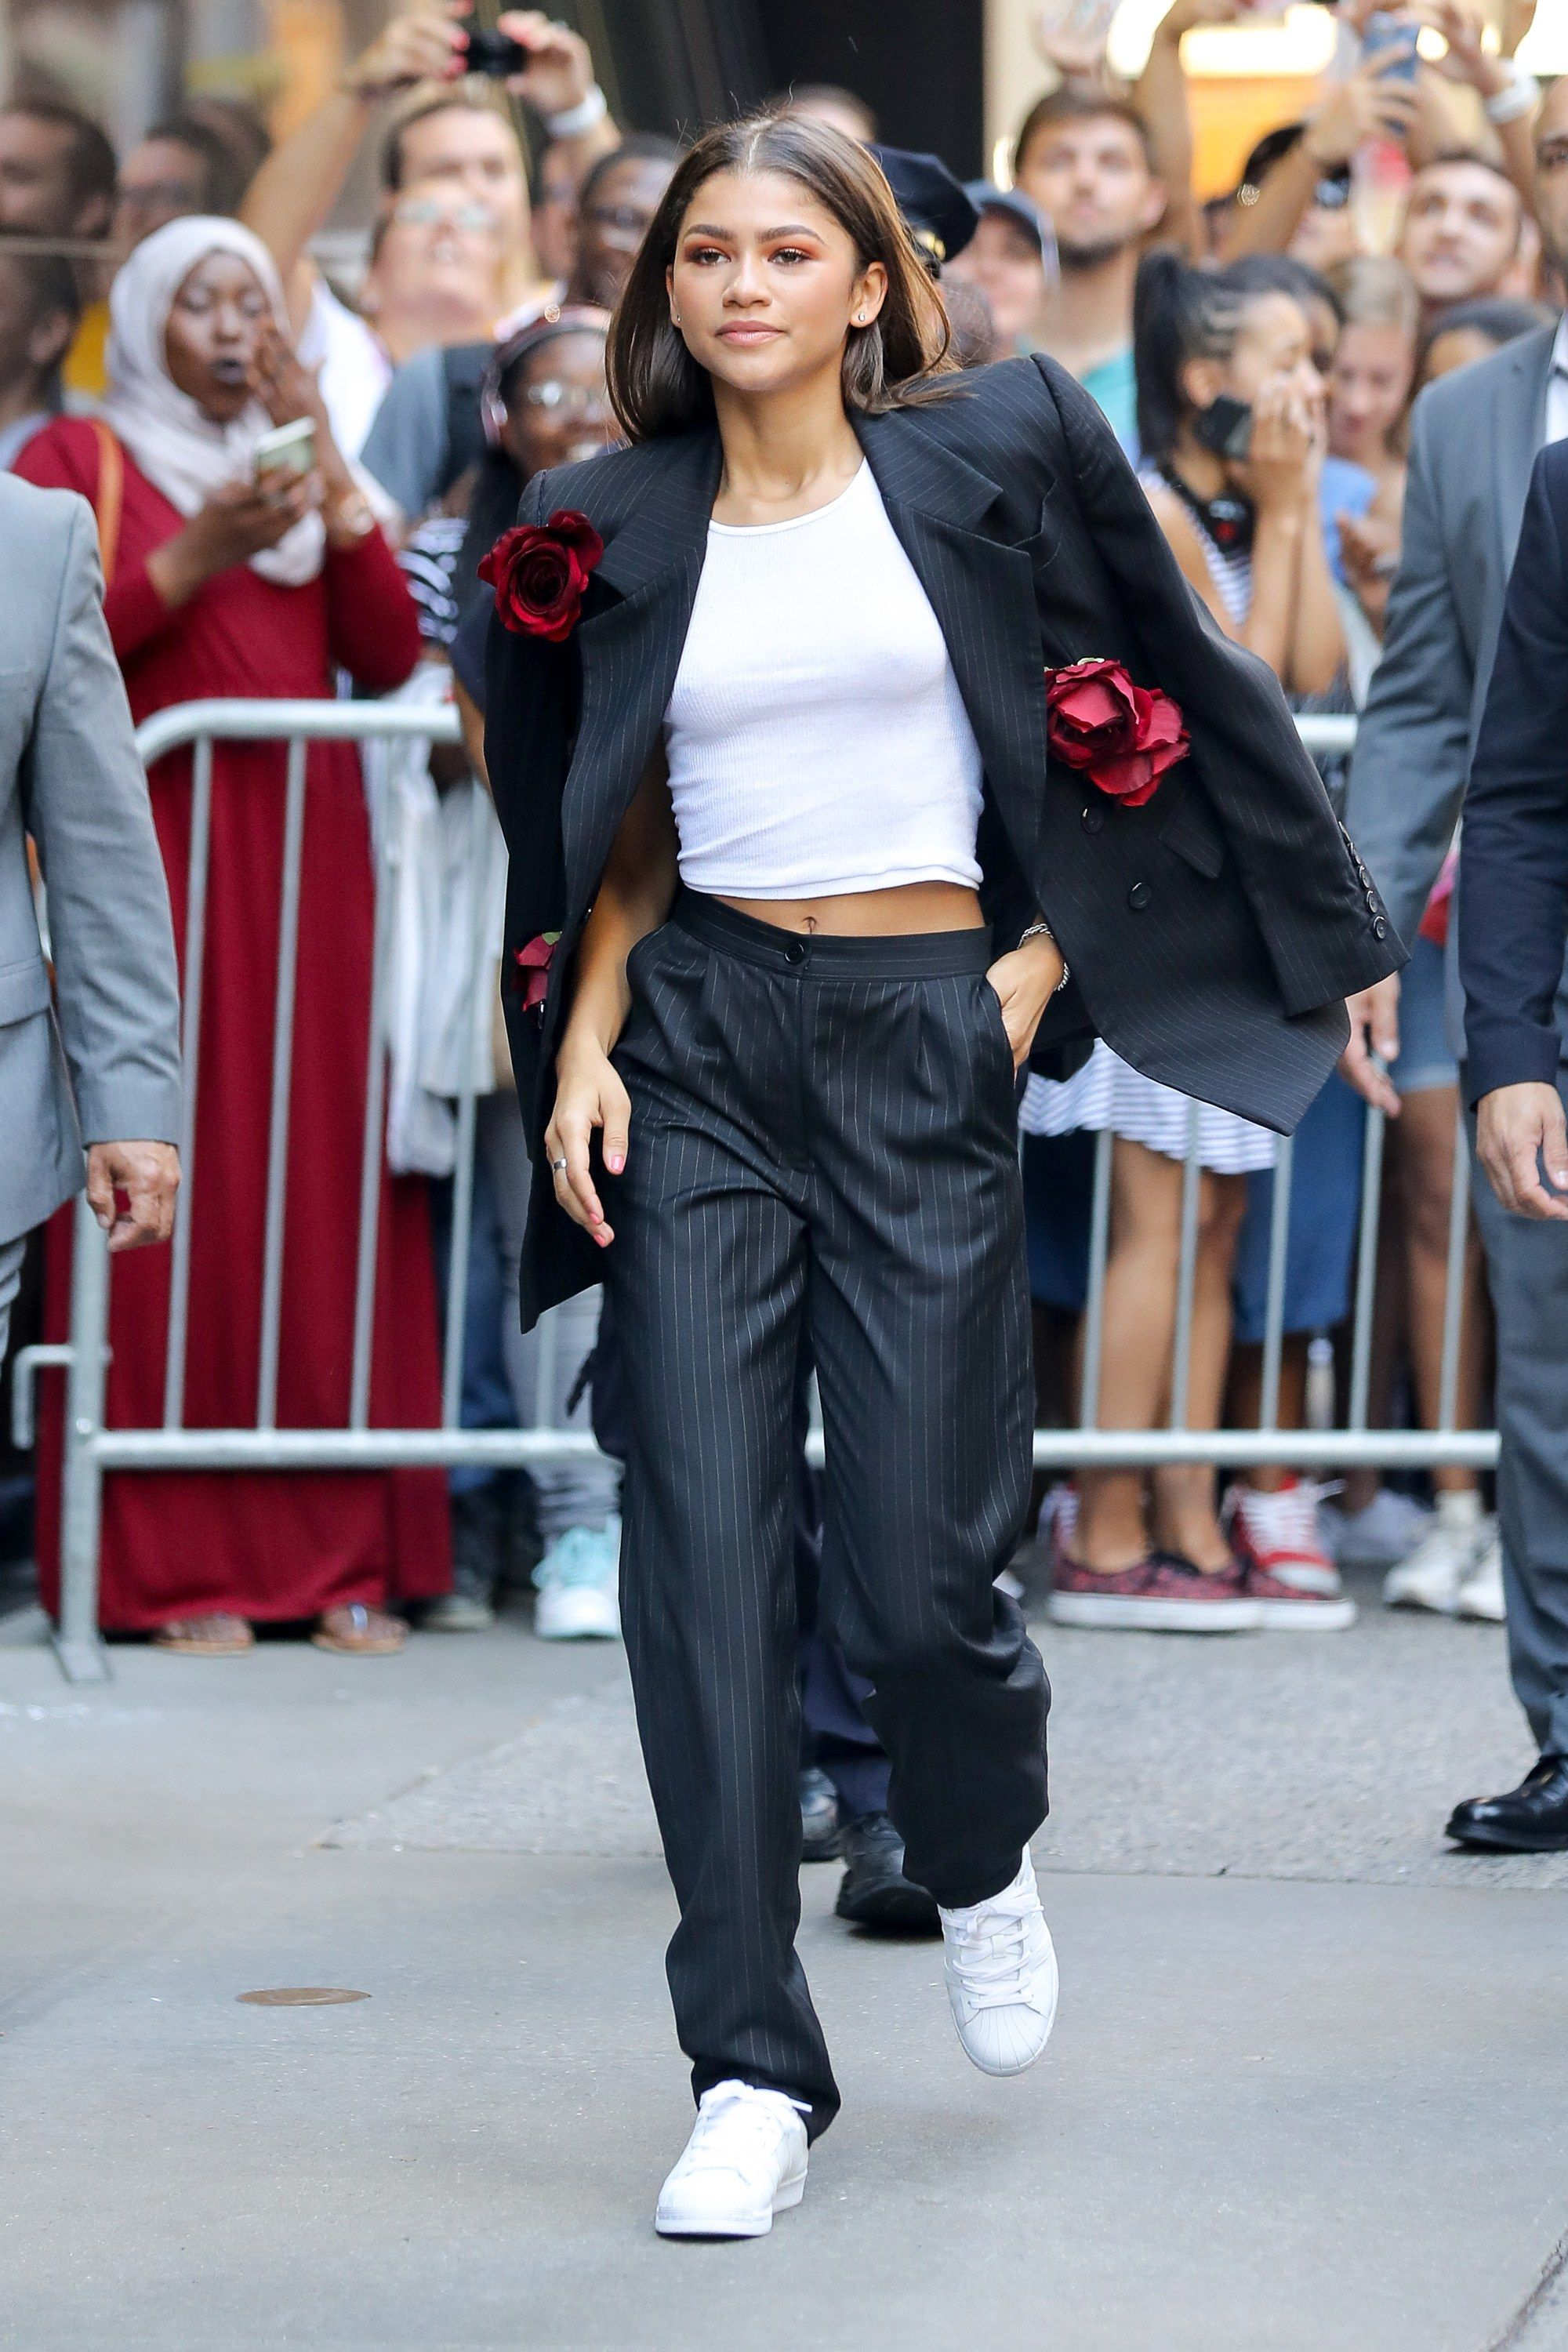 Can You Wear Sneakers With a Suit? Zendaya Proves It's Possible | Zendaya  outfits, Zendaya style, Fashion